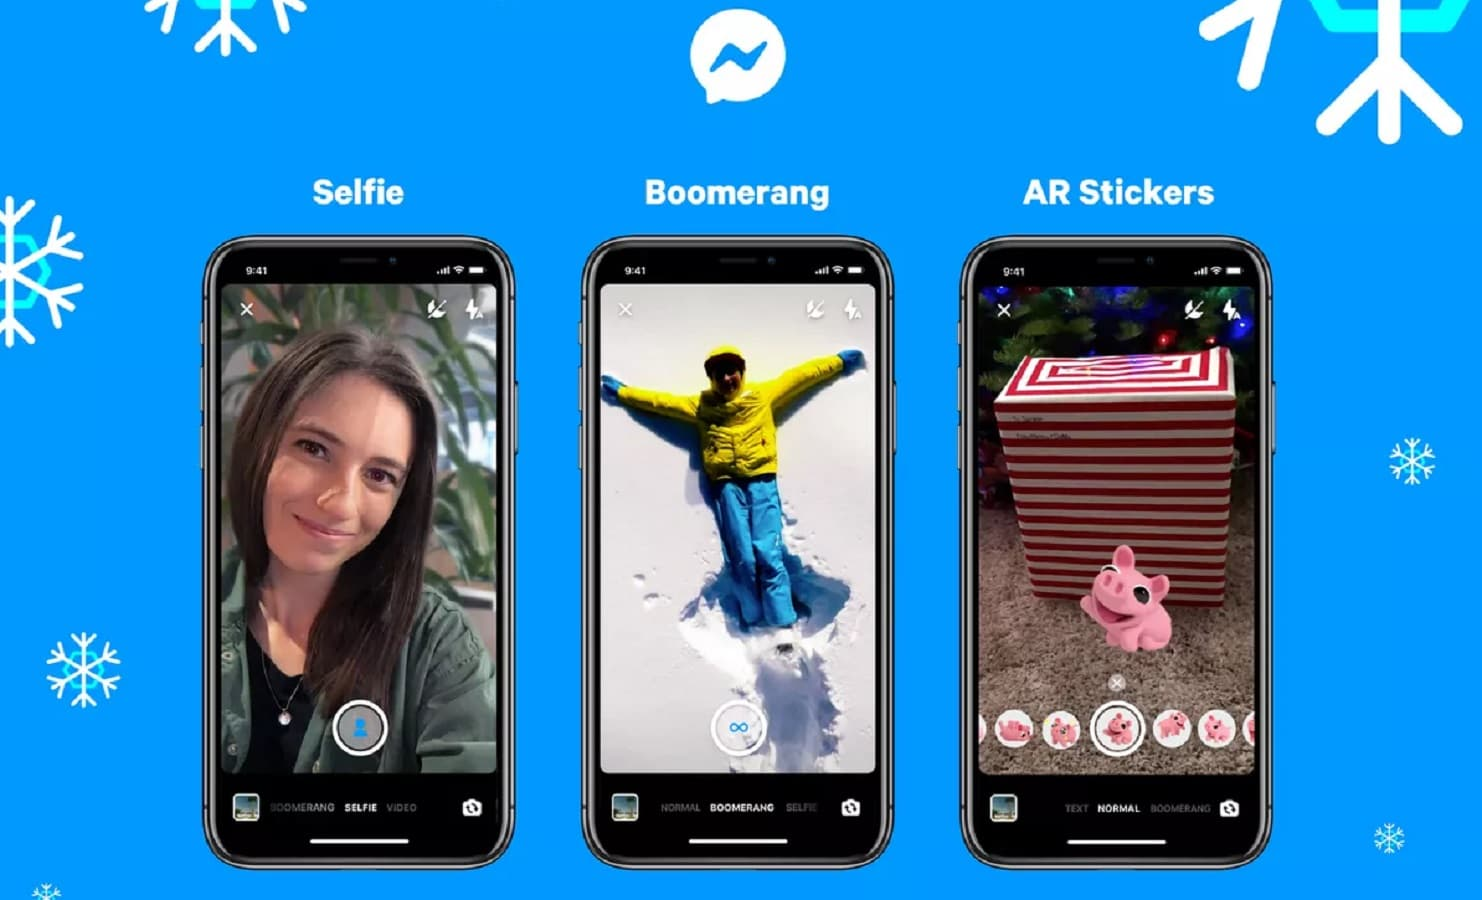 new facebook messenger features include selfie mode